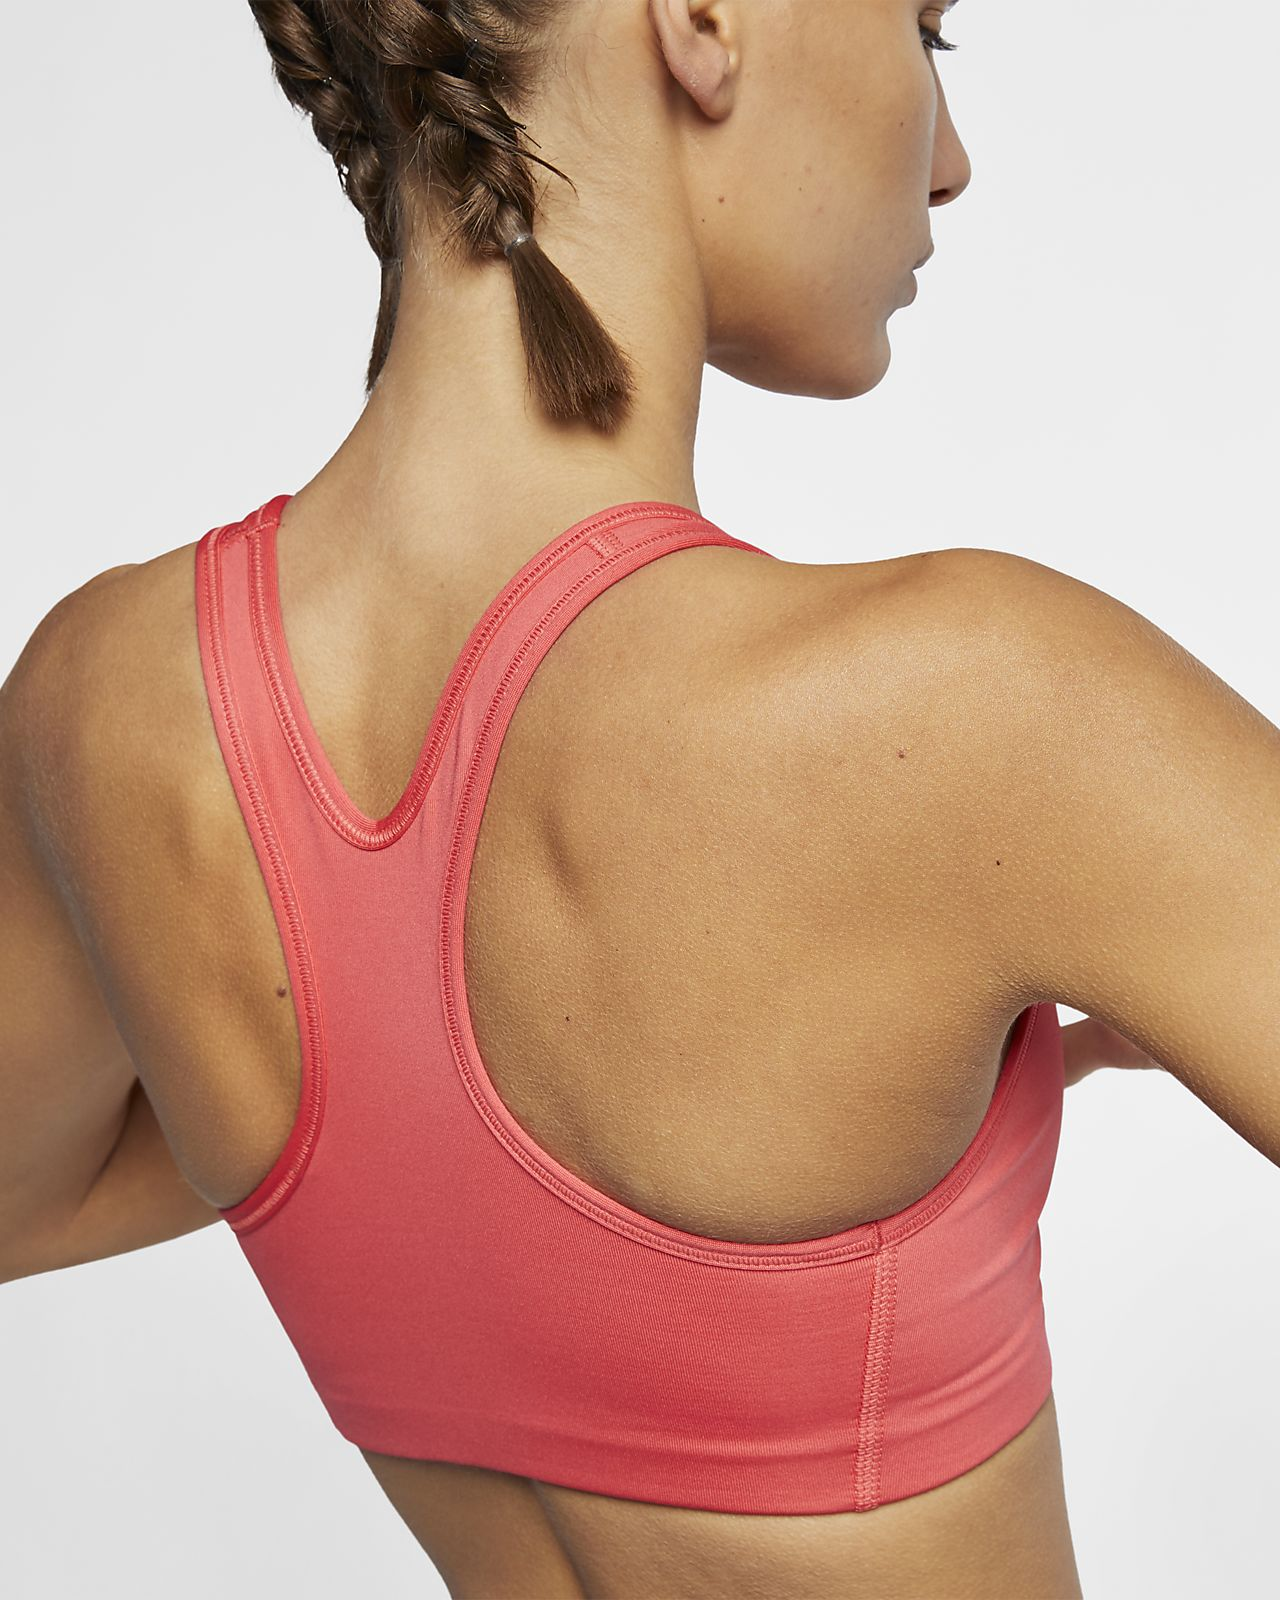 a4206a4640 Nike Women s Swoosh Medium Support Sports Bra. Nike.com